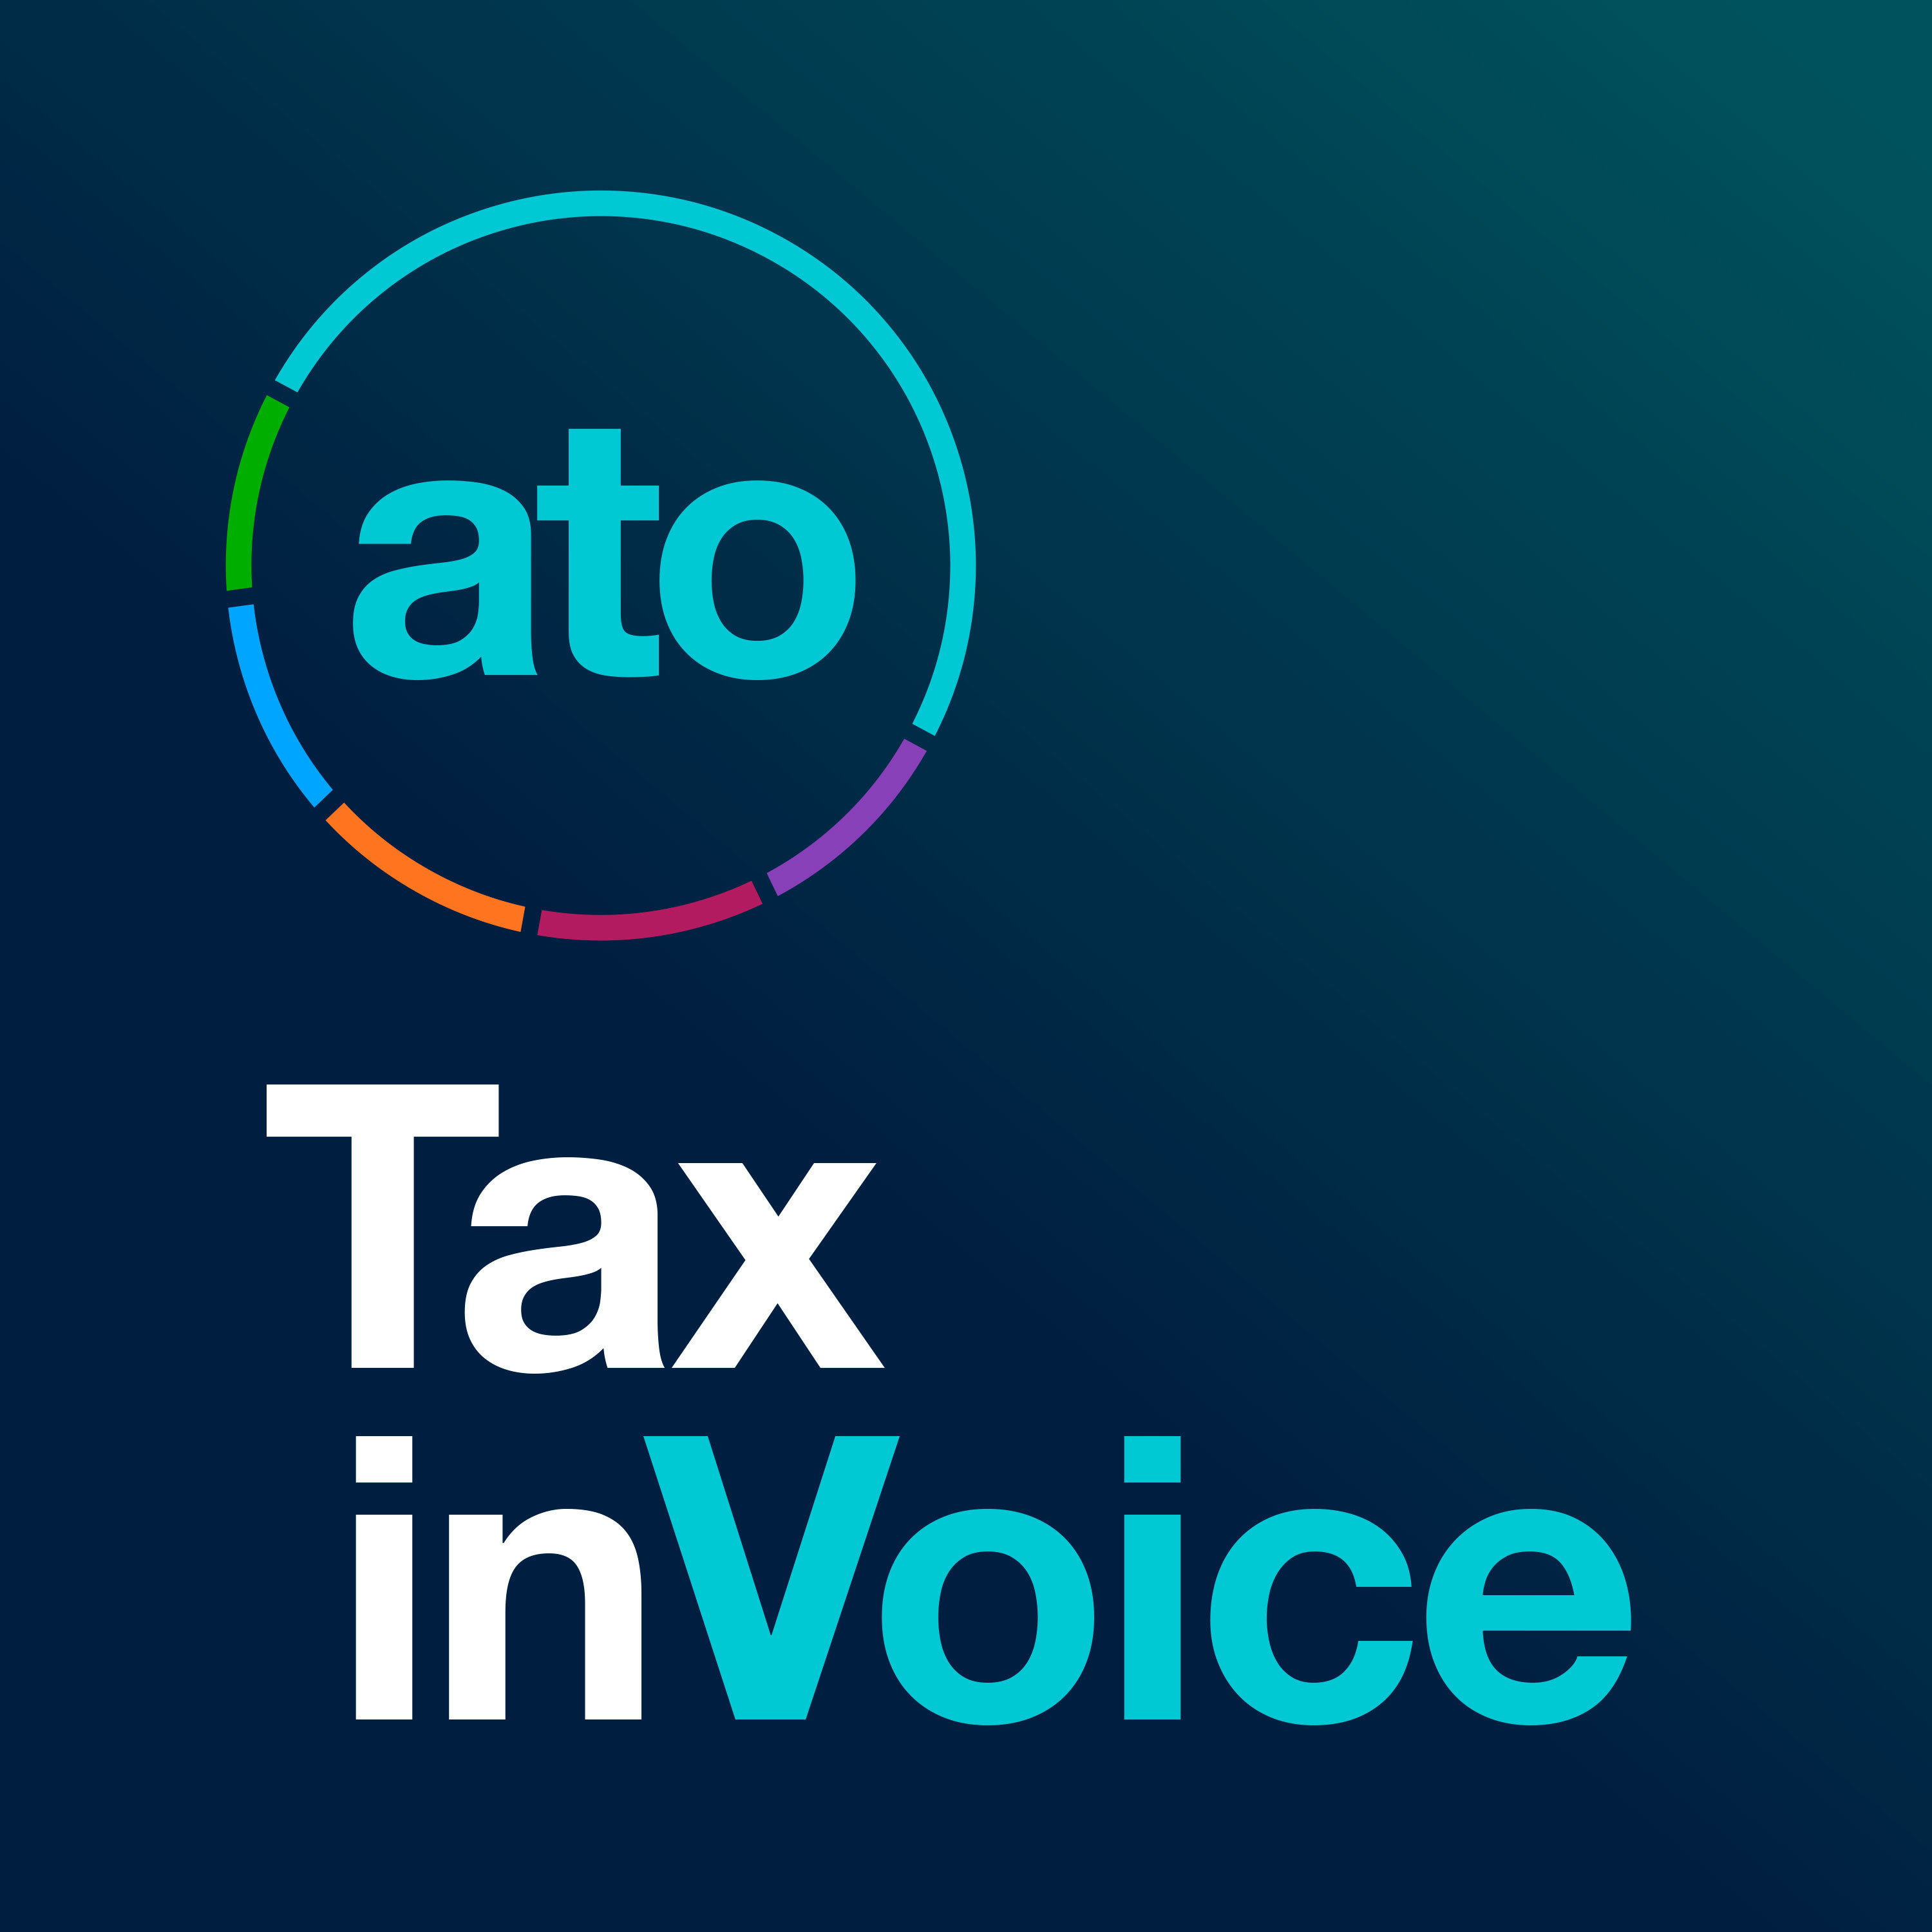 Tax inVoice - Talking tax for small business